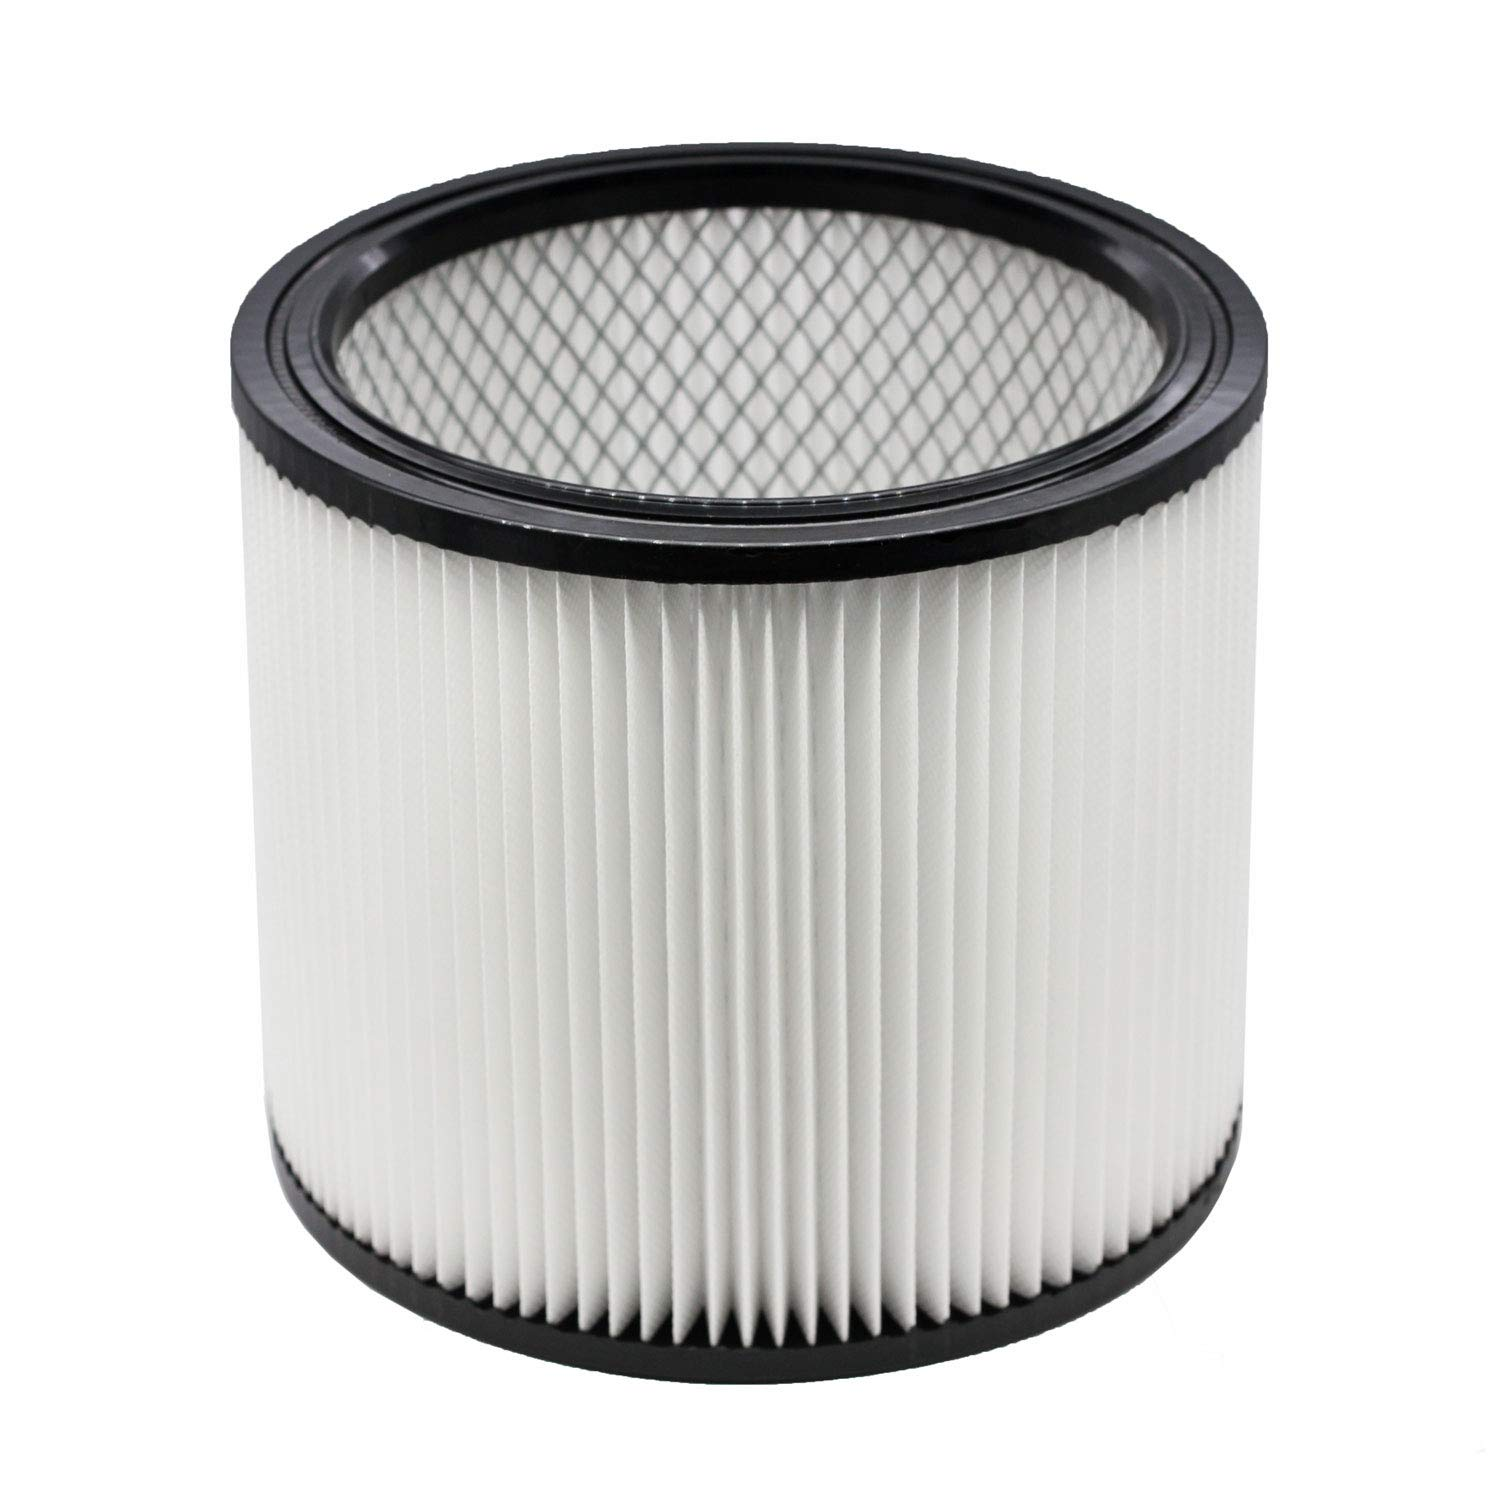 Extolife Replacement Filter for for Shop-Vac 90350 90304 90333 Replacement fits most Wet/Dry Vacuum Cleaners 5 Gallon and above